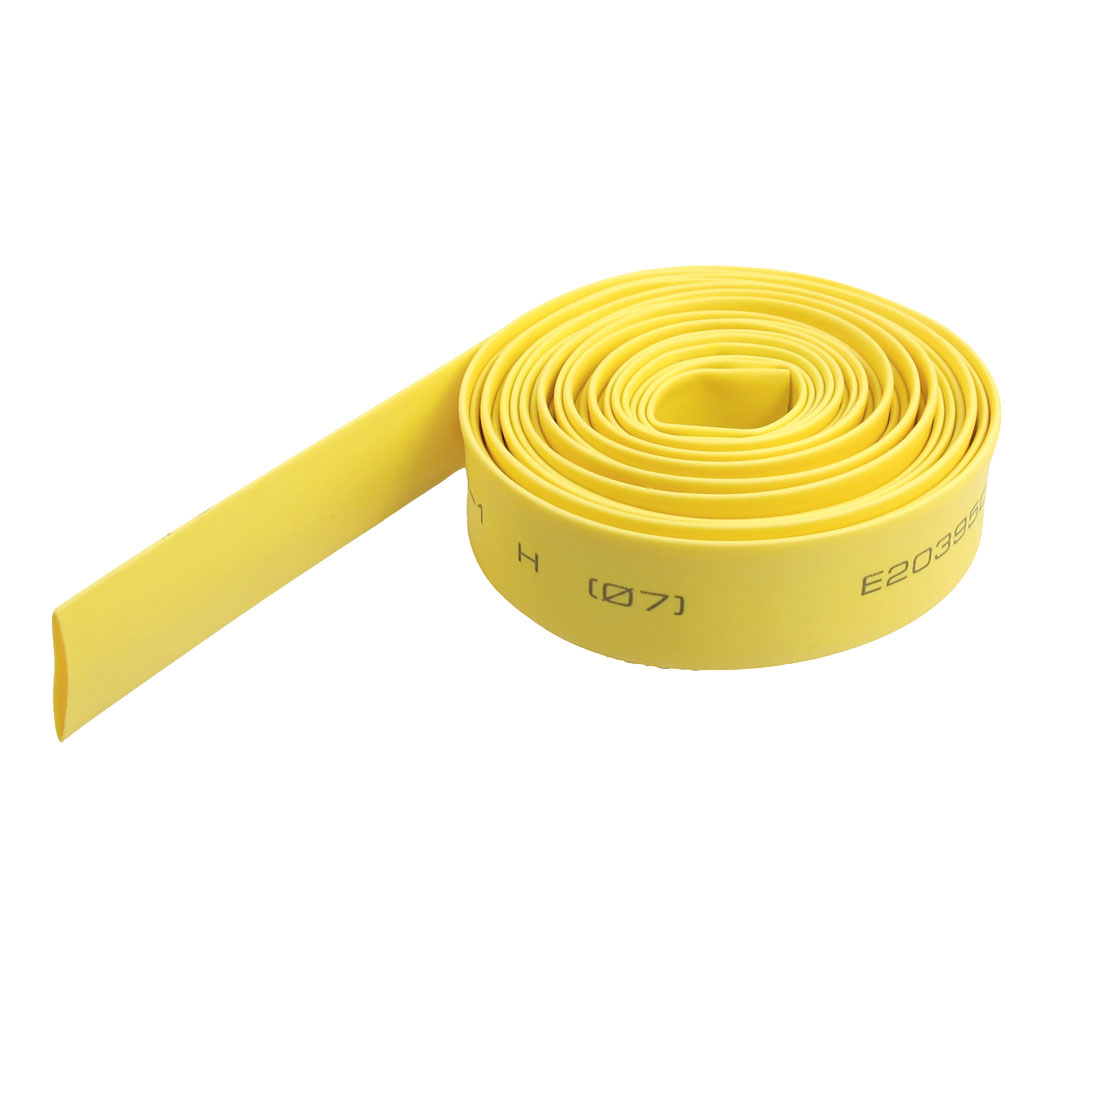 Ratio 2:1 7mm Dia Yellow Polyolefin Heat Shrinkable Tube 2M 6.6Ft